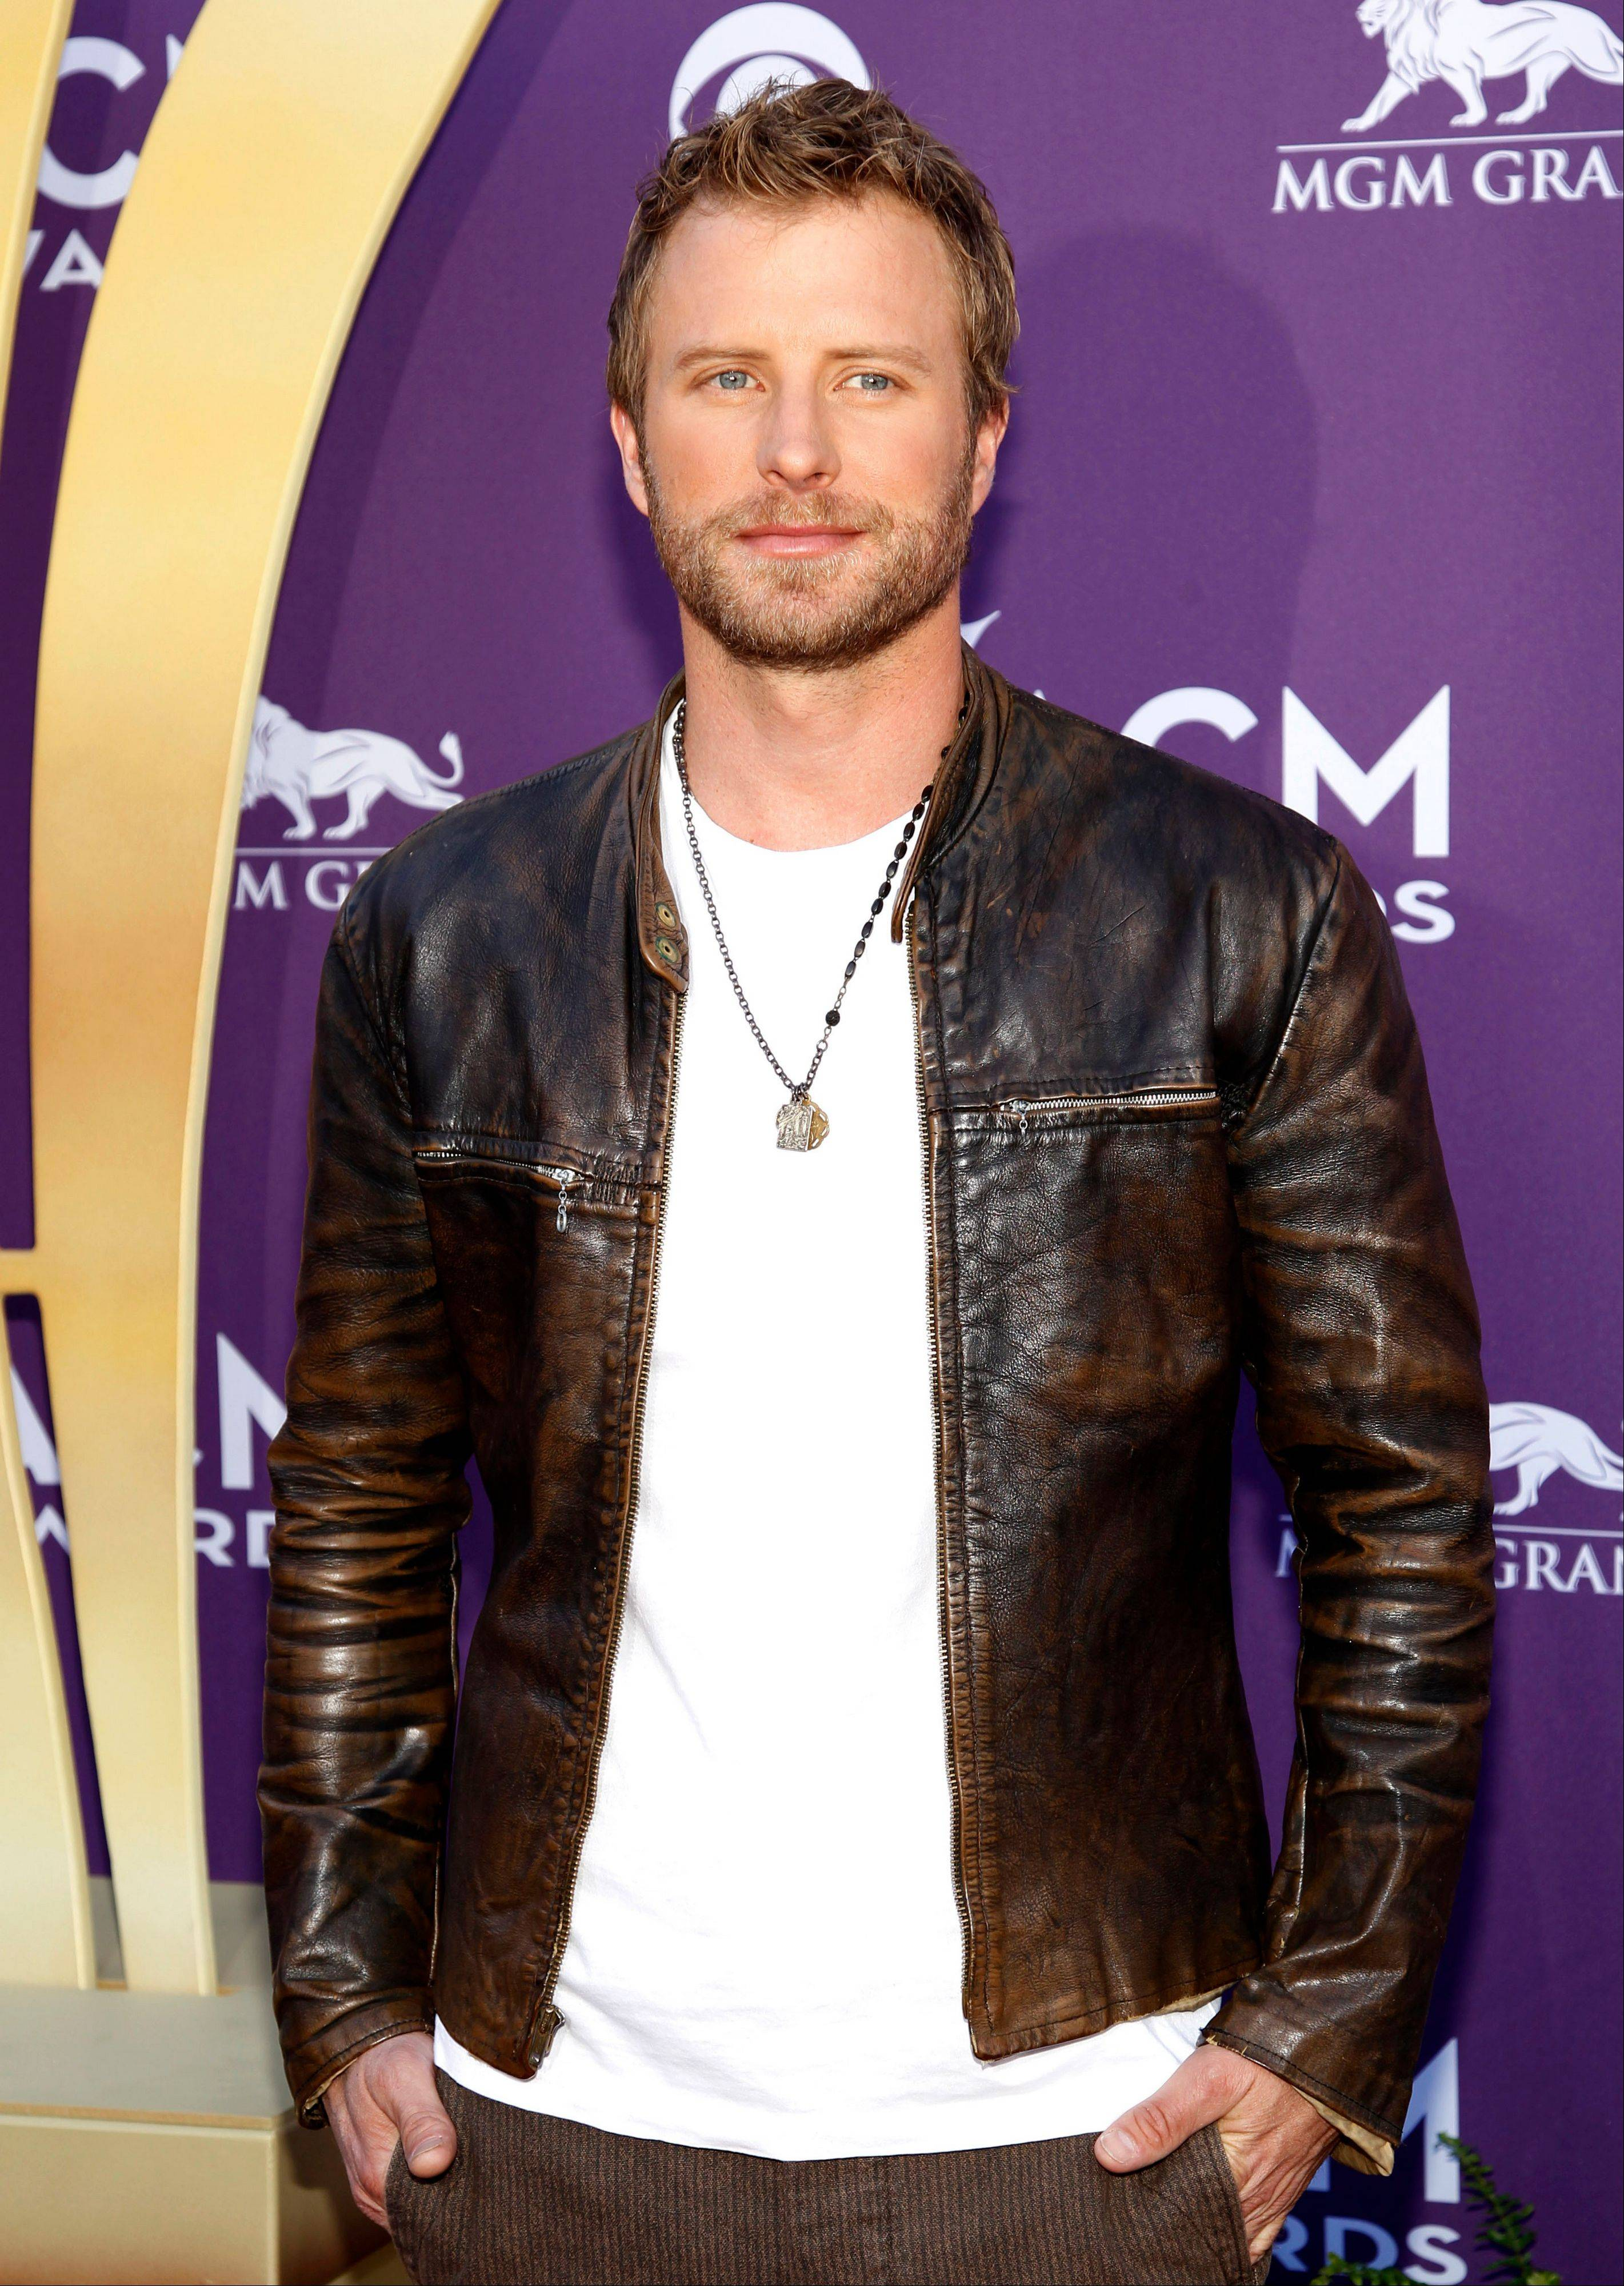 Dierks Bentley arrives at the 47th Annual Academy of Country Music Awards on Sunday in Las Vegas.